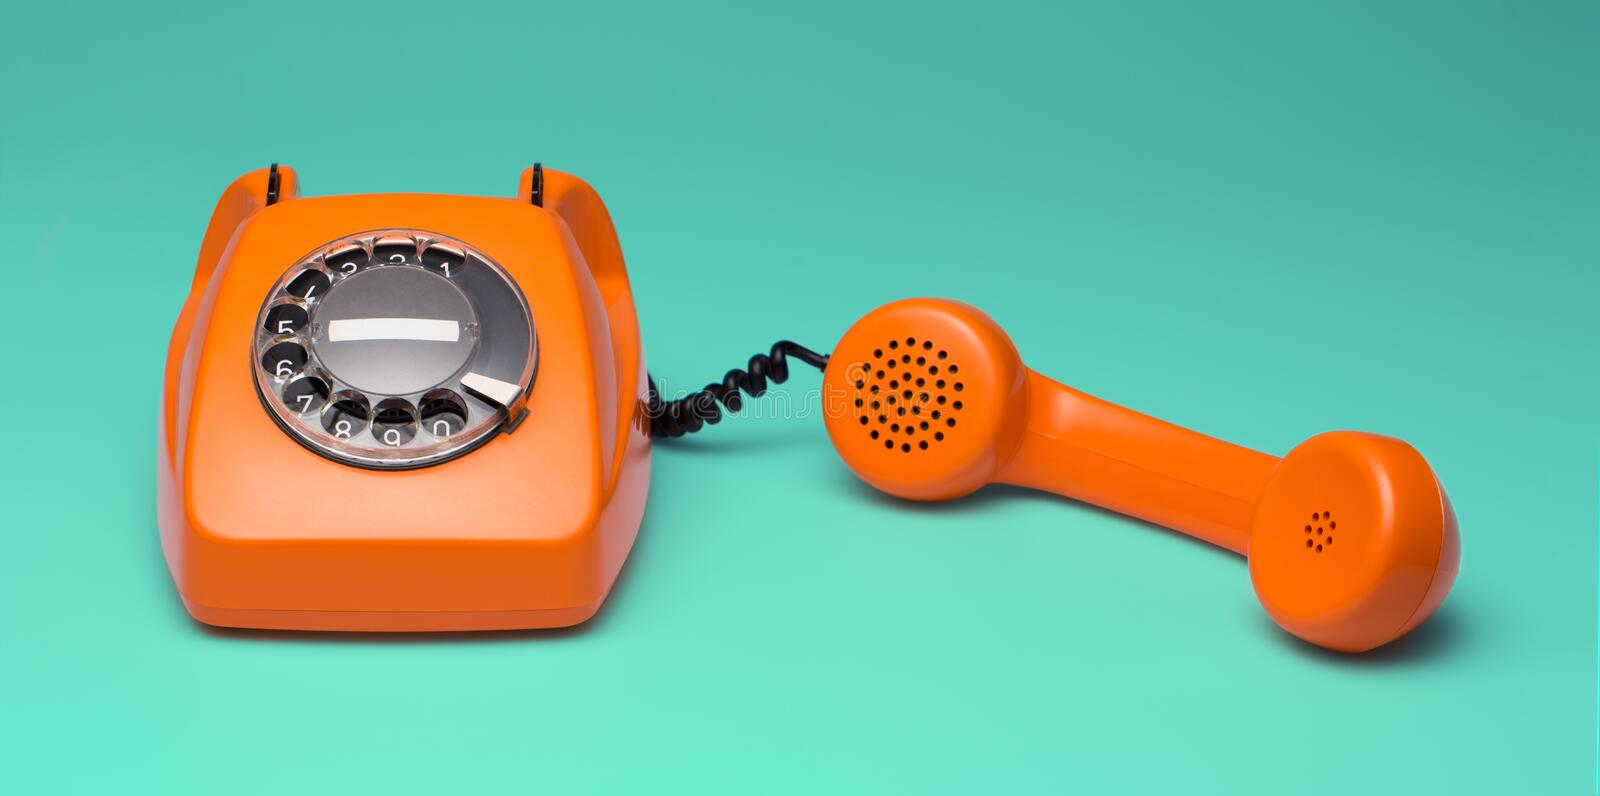 Retro styled phone. Old phone isolated on neutral background stock images